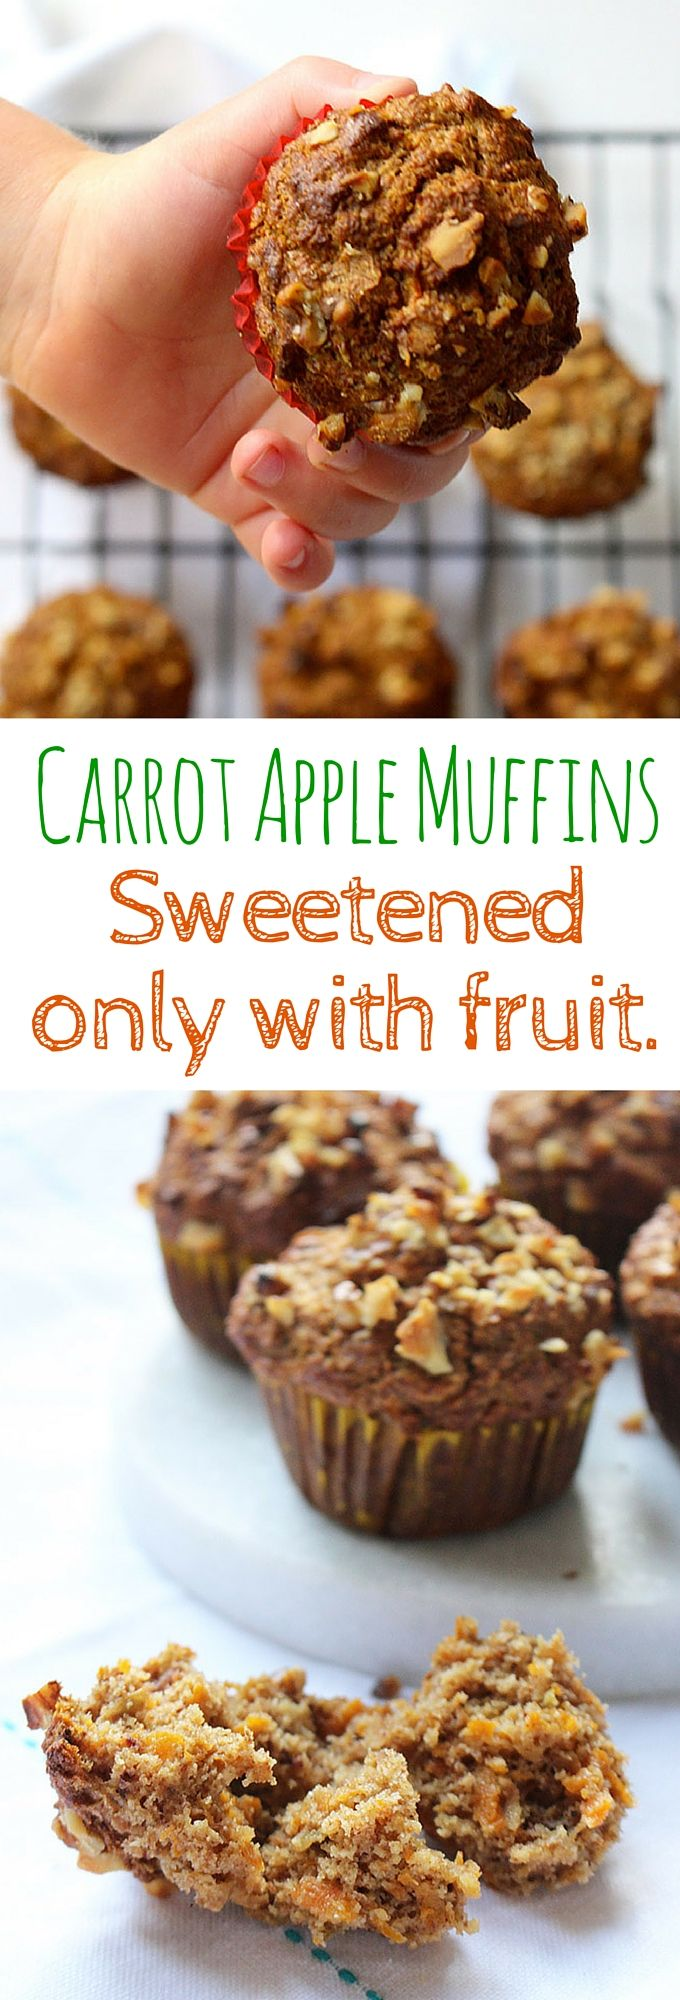 Carrot Apple Muffins (No added sugar)